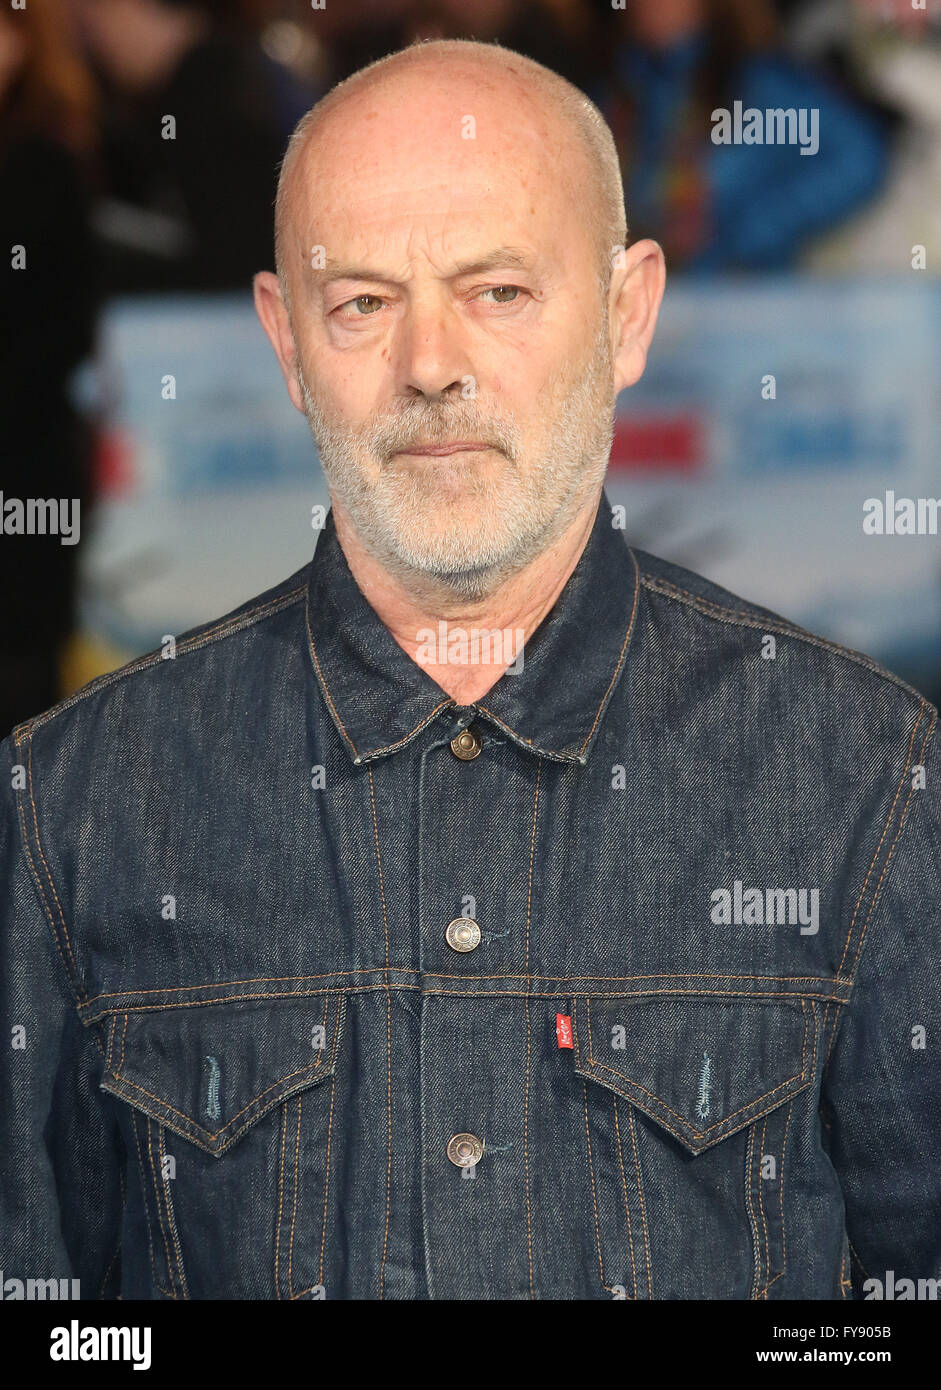 keith allen unlawful killingkeith allen height, keith allen hockey, keith allen chicago, keith allen game of thrones, keith allen, keith allen harvard, keith allen z nation, keith allen actor, keith allen unlawful killing, keith allen facebook, keith allen kay, keith allen twitter, keith allen wife, keith allen vanke, keith allen phillips, keith allen band, keith allen wiki, keith allen imdb, keith allen net worth, keith allen will burn in hell